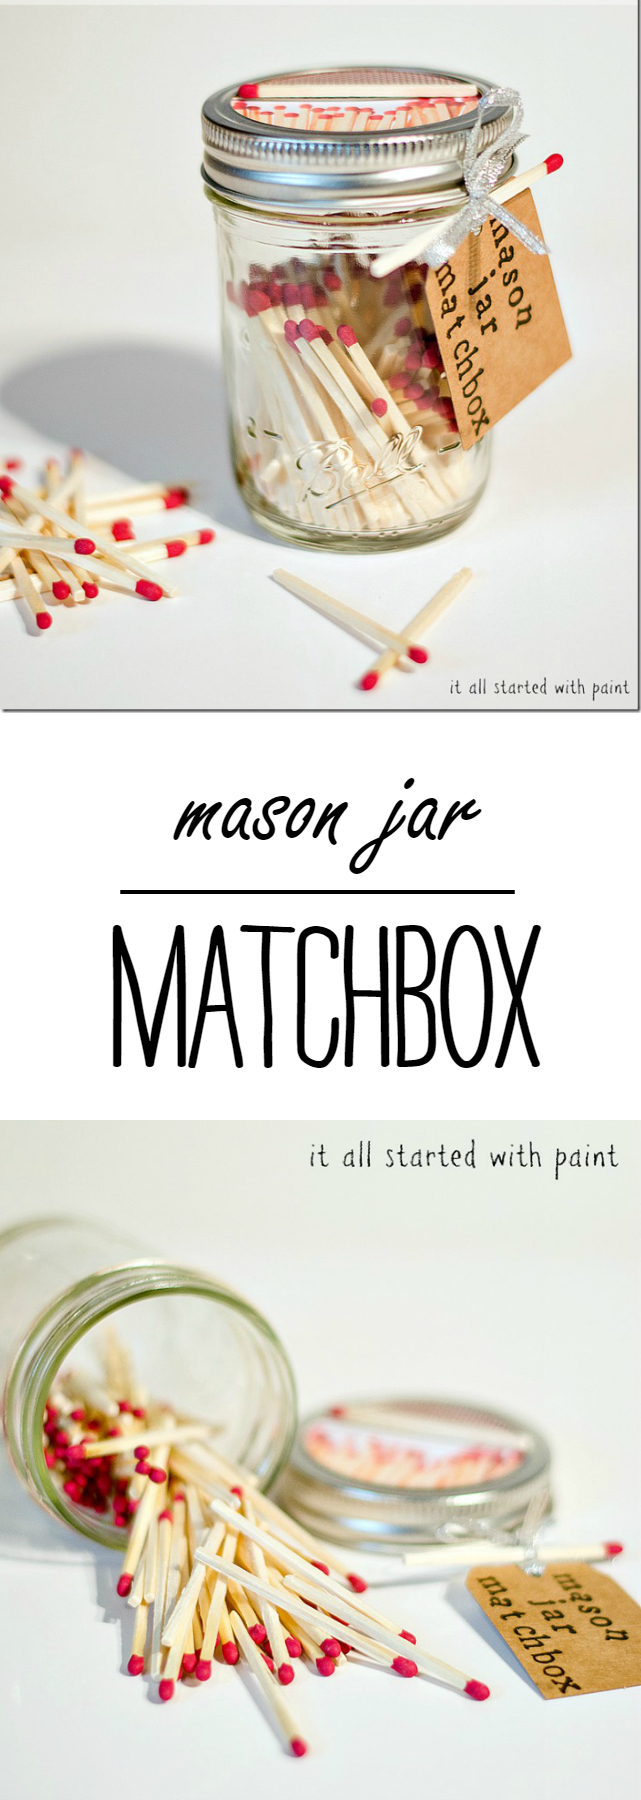 Mason Jar Matchbox Gift Idea for Father's Day